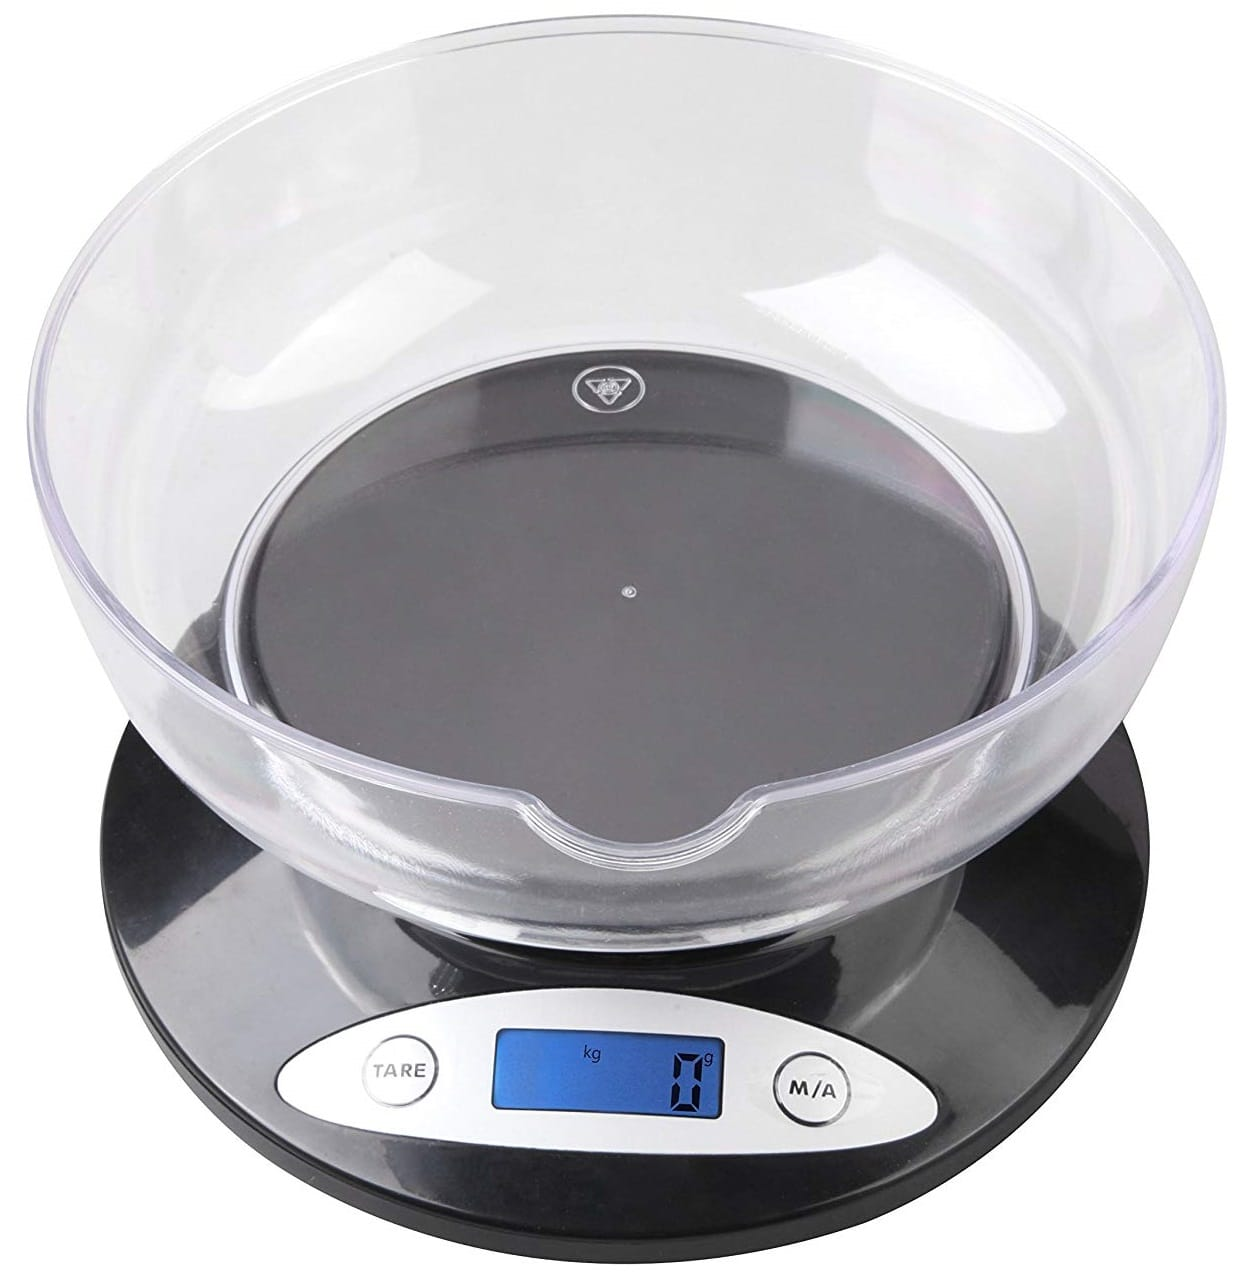 Weighmax Electronic Kitchen Scale